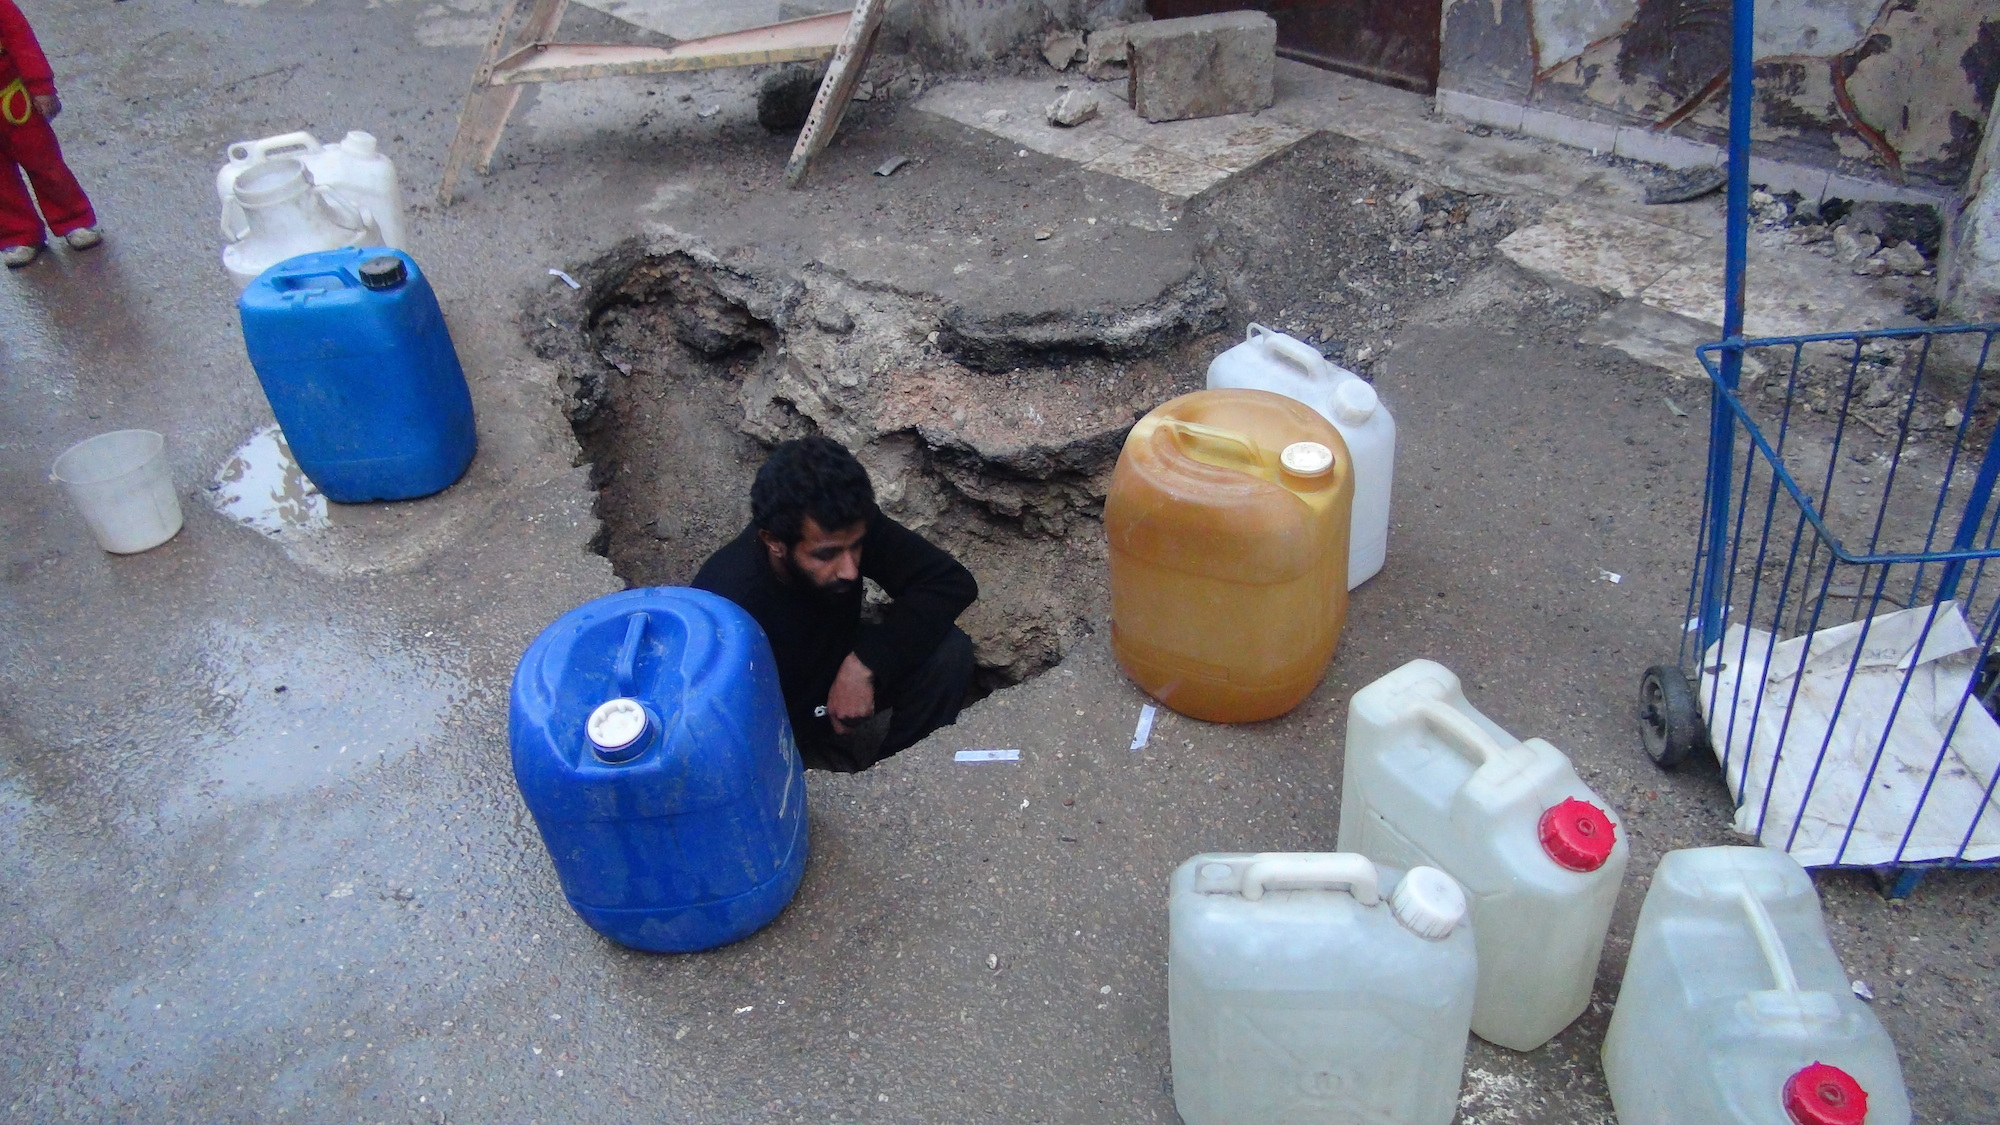 To access water in Yarmouk, the surface of this road was dug up.